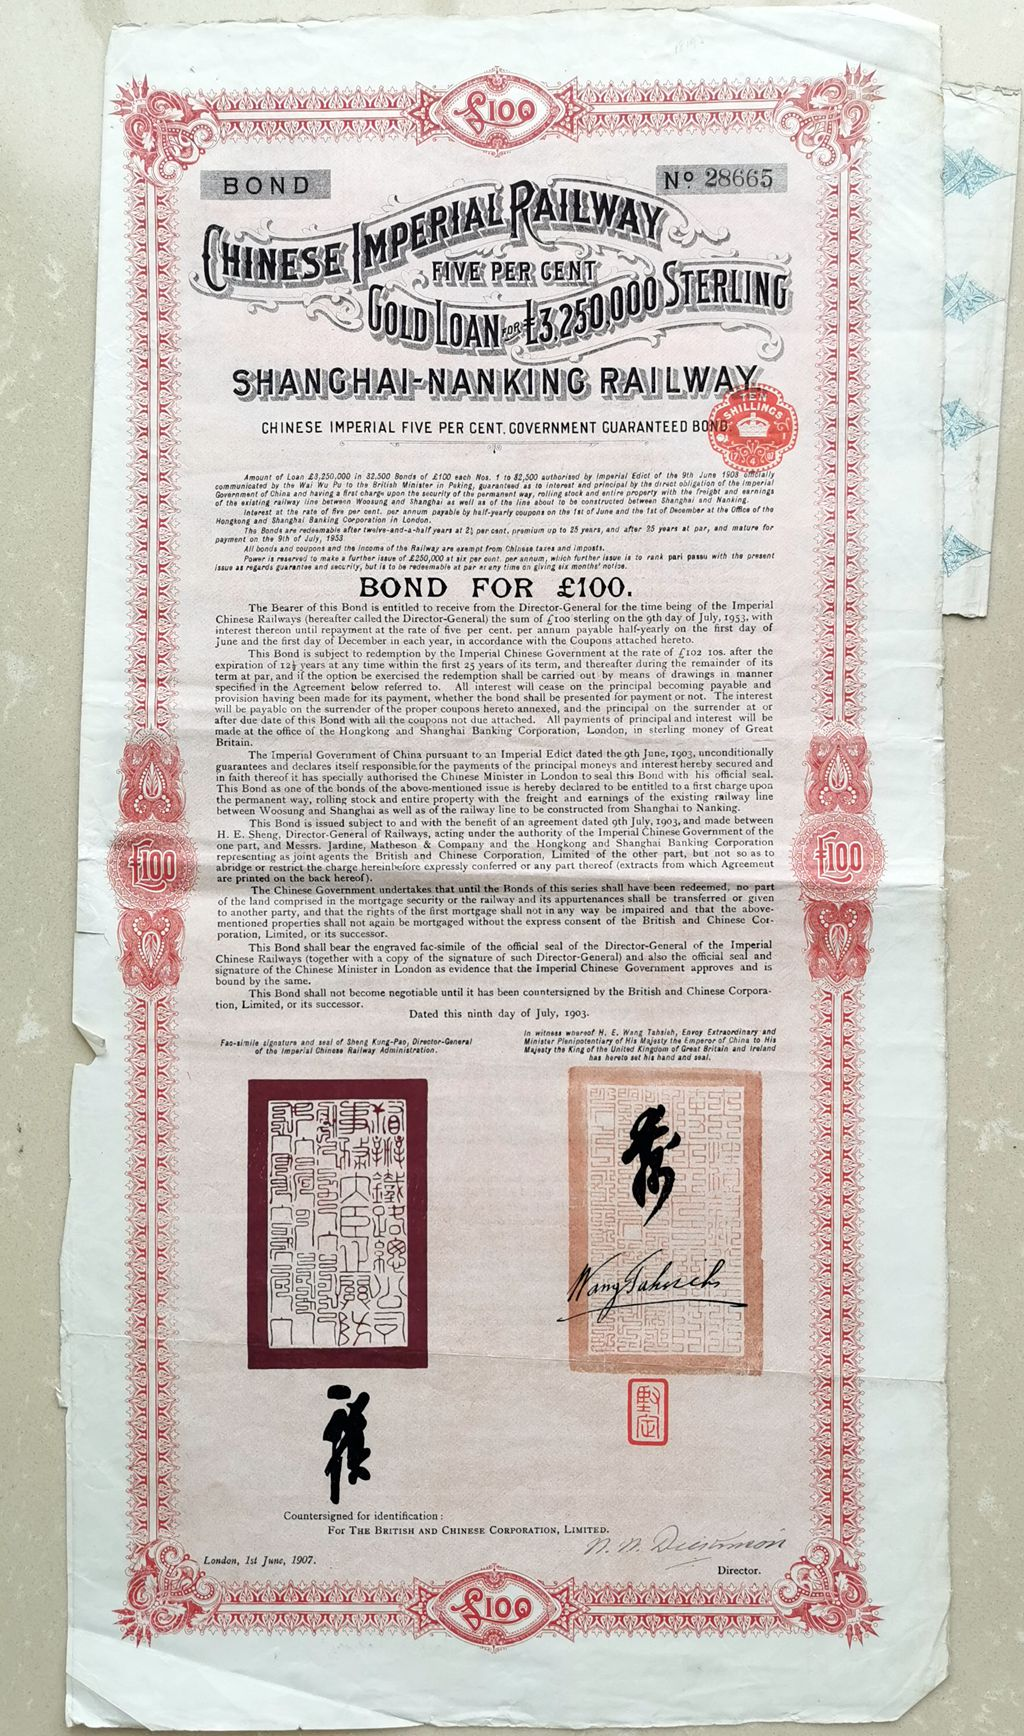 B9056, China 5% Shanghai-Nanking Railway Loan, 100 Pounds Bond 1907